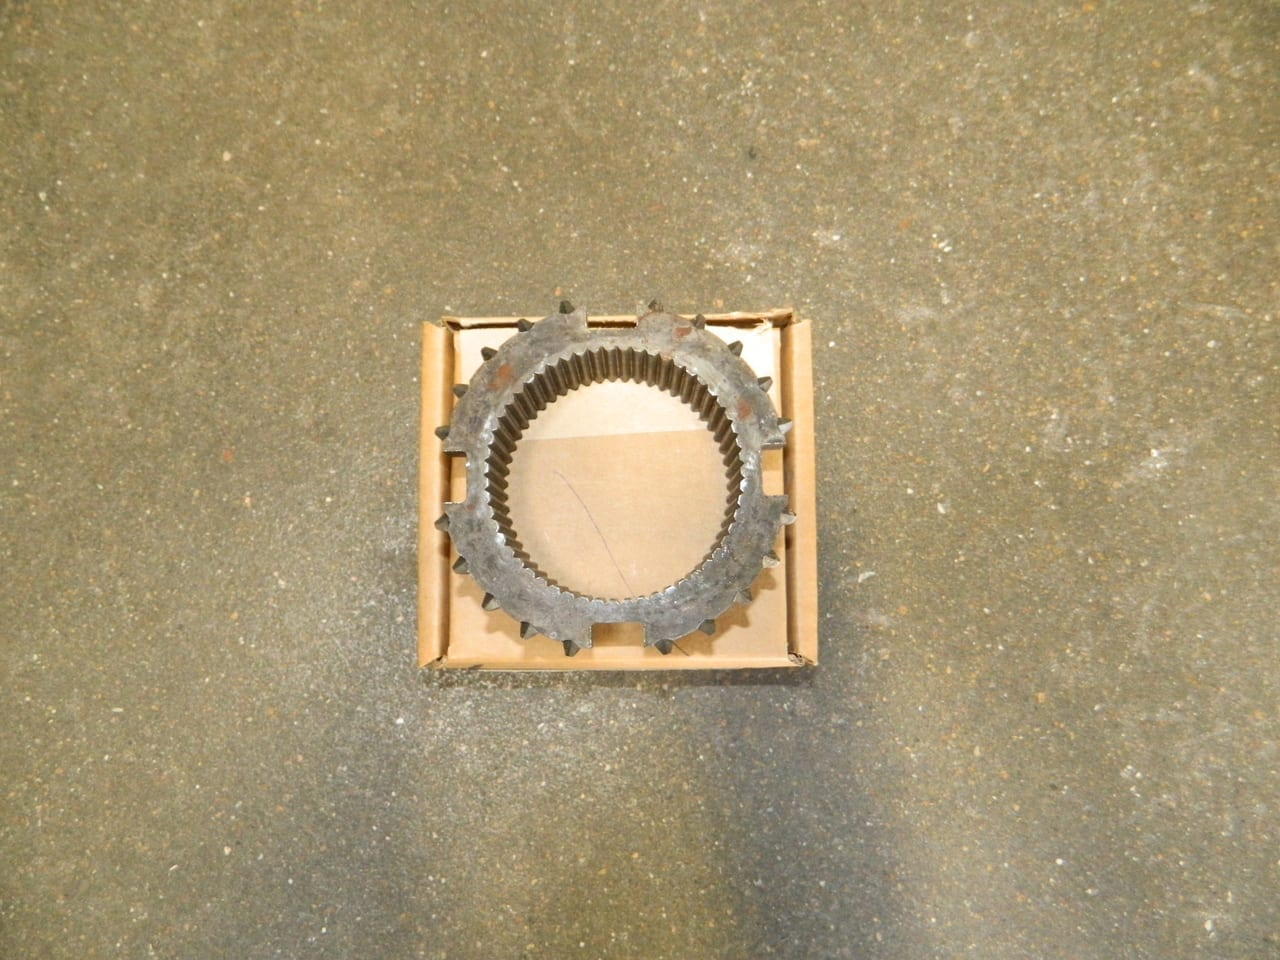 217 273 Ford Dodge Transfer Case Mode Synchronizer Clutch Gear 271D 271F 273D 273F